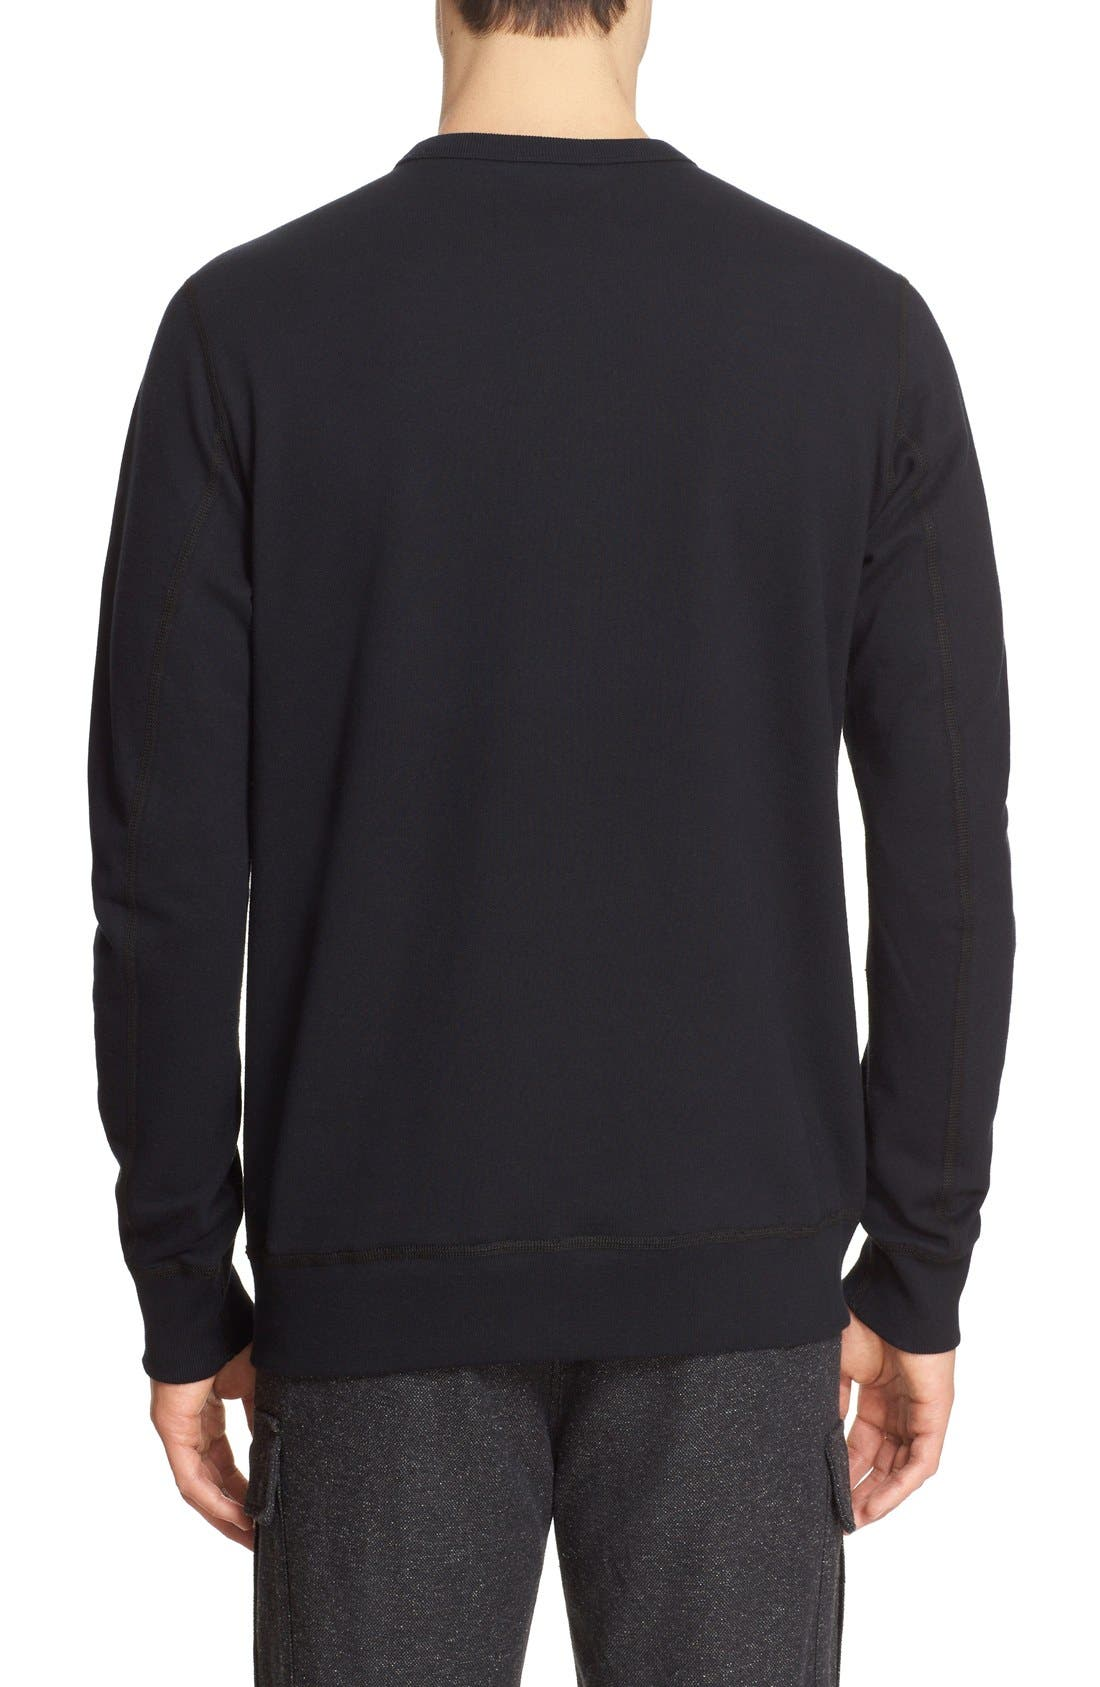 French Terry Sweatshirt,                             Alternate thumbnail 2, color,                             001